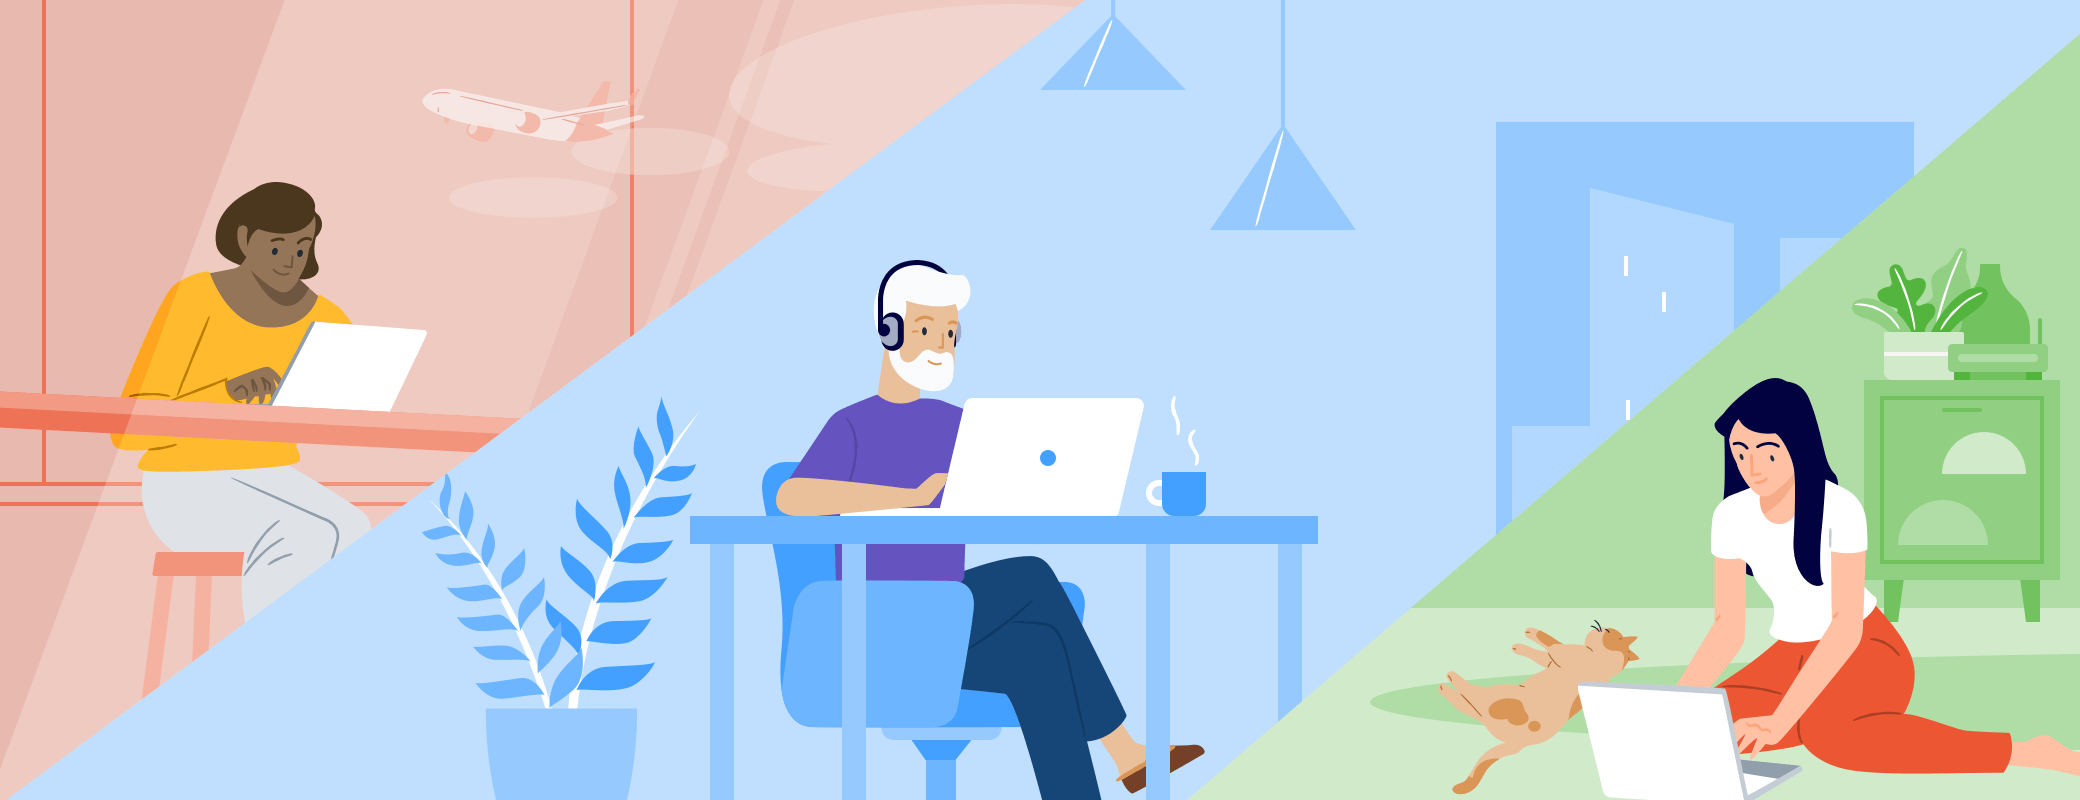 How to make remote work, work: tips from 1Password | 1Password